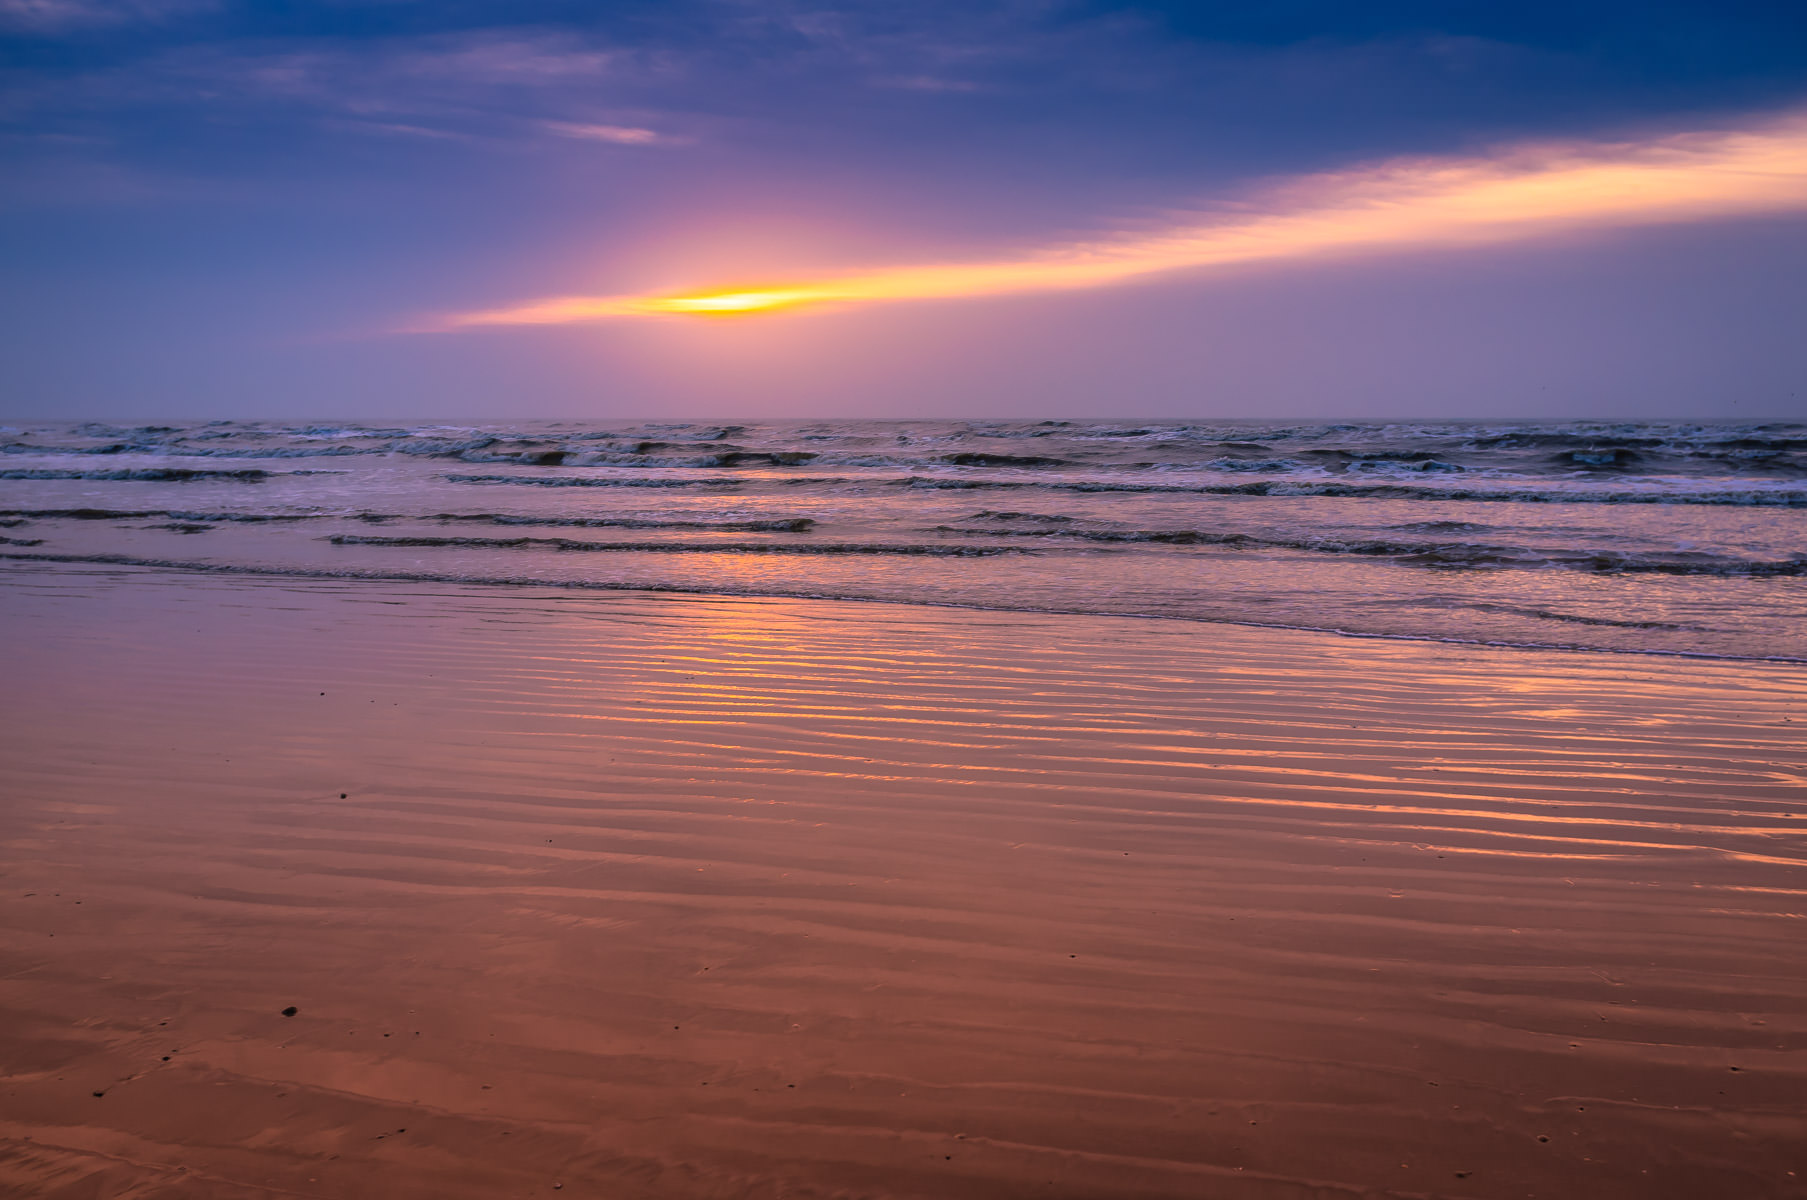 The sun rises over the Gulf of Mexico, shining through the early-morning clouds at Galveston, Texas.